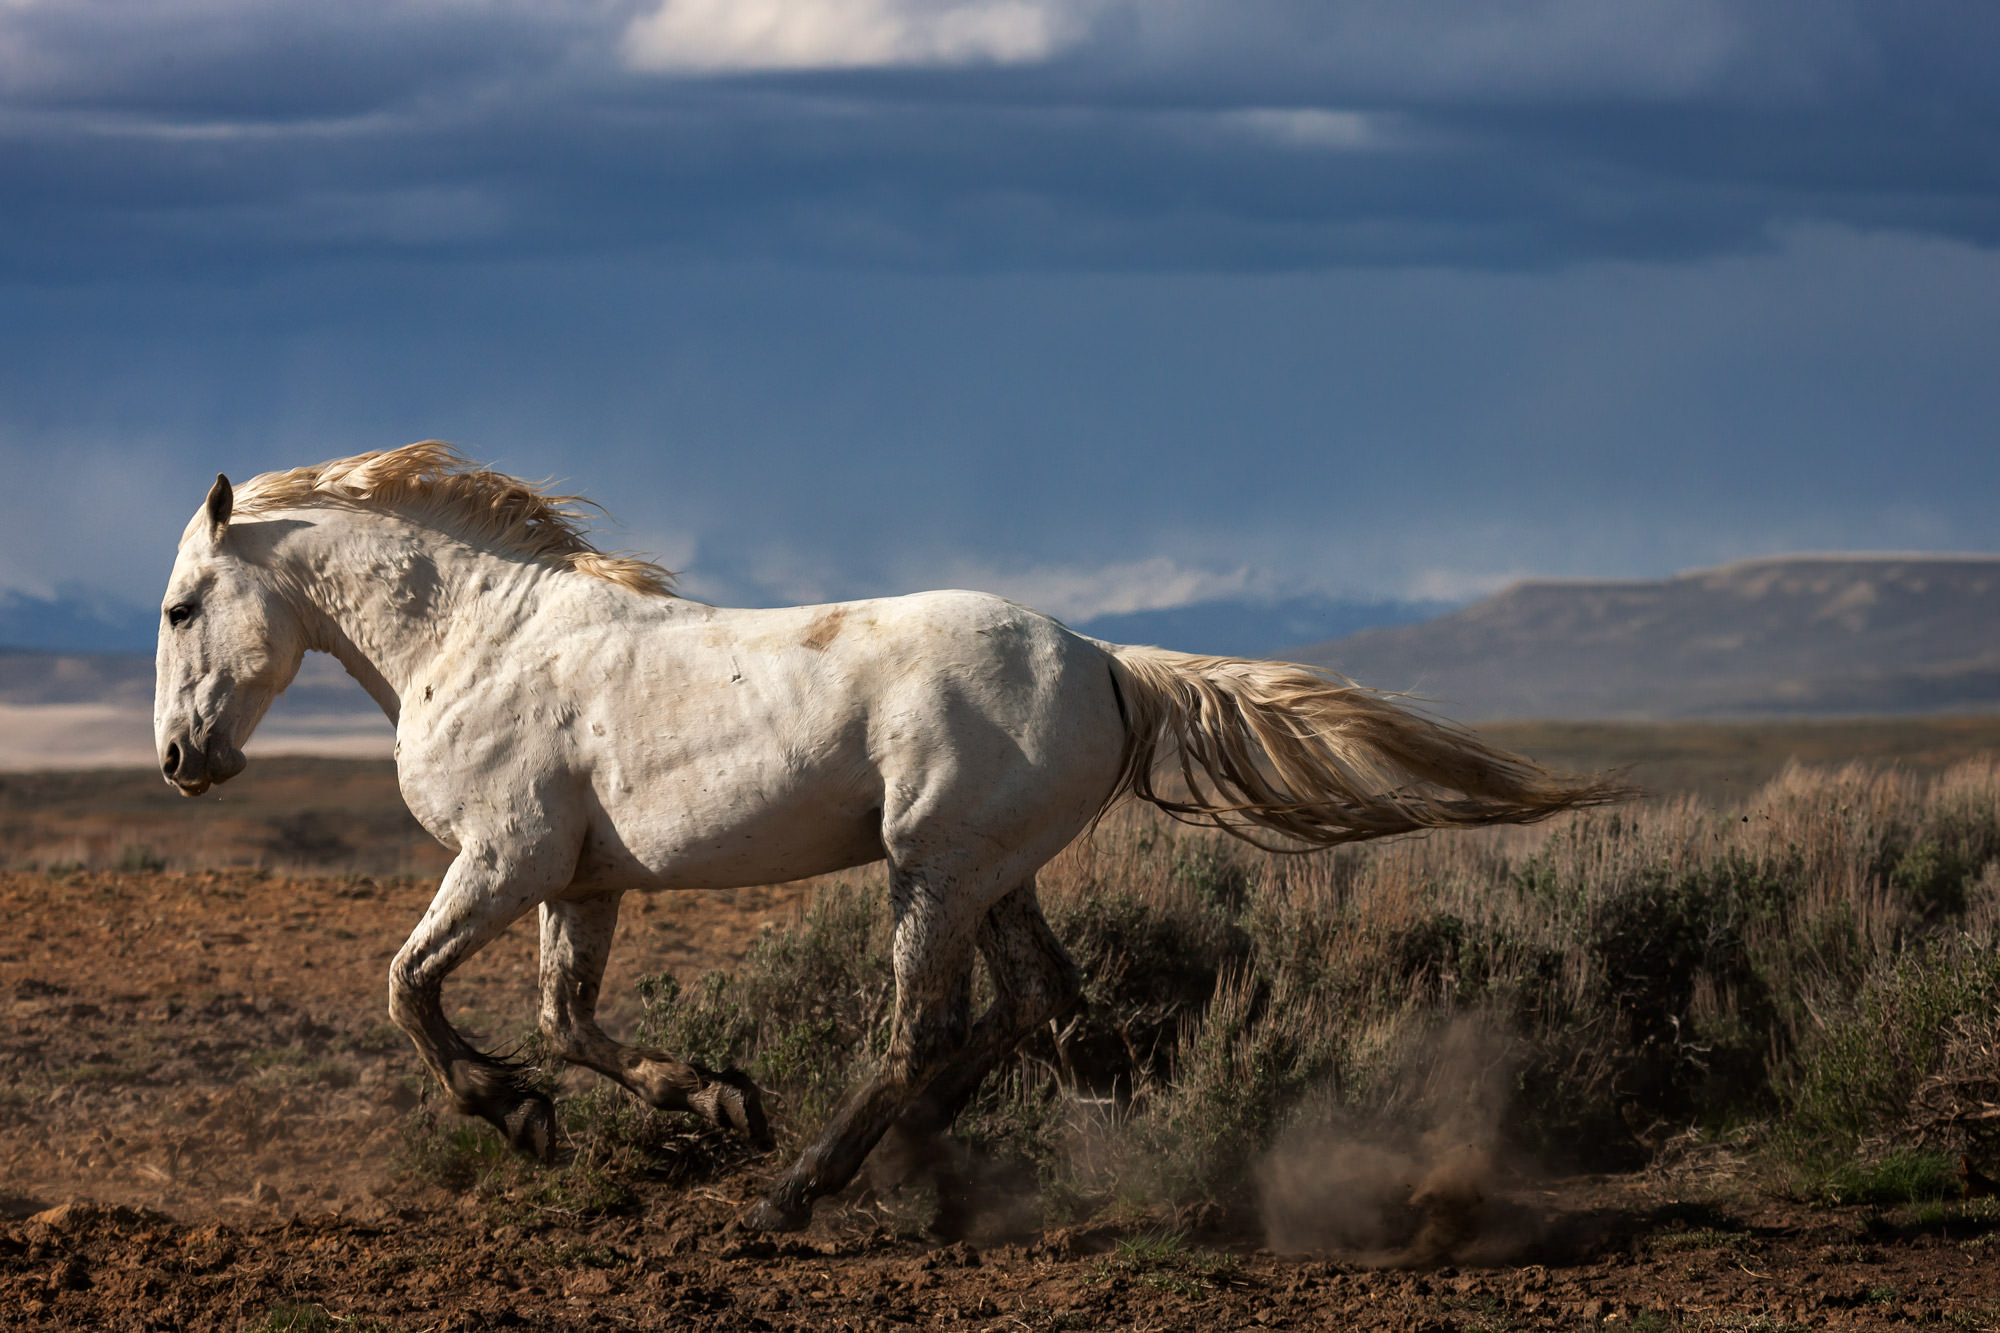 Wild Horse Fine Art Photography A Limited Edition photograph of a white, Wild Horse galloping and kick up dust in Southern Wyoming...